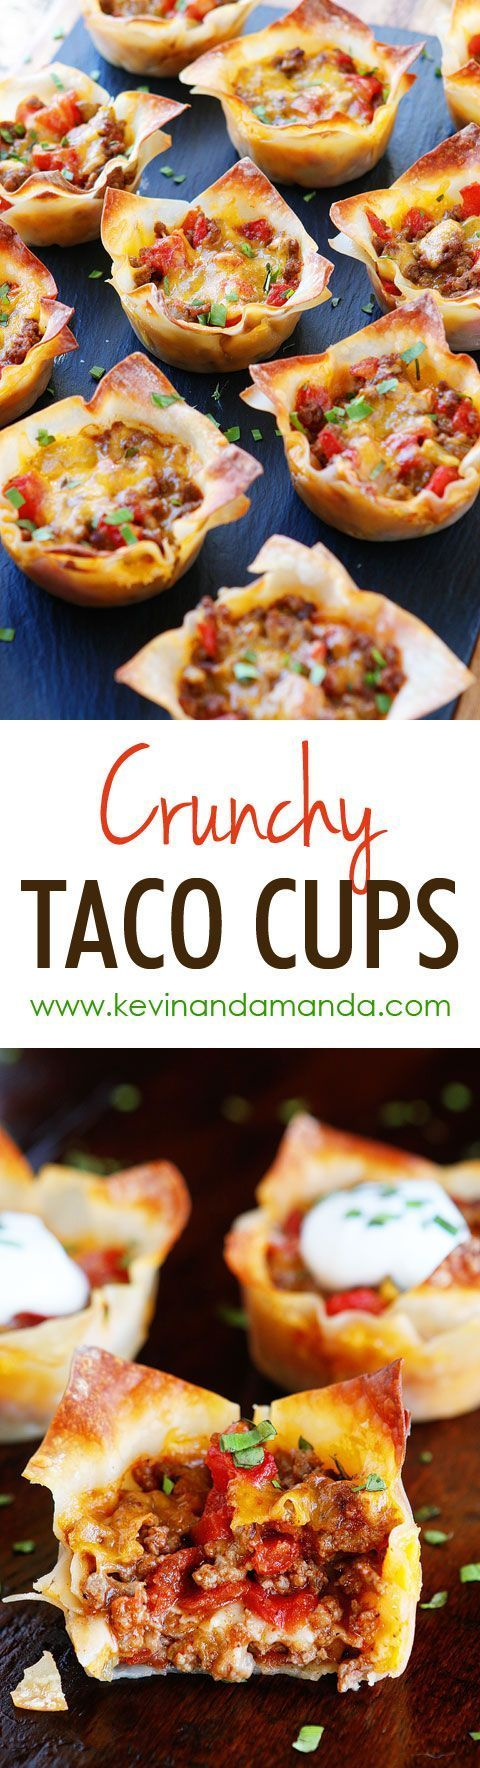 The Best Easy Party Appetizers, Hors D'oeuvres, Delicious Dips and Finger Foods Recipes – Quick family friendly tapas and snacks for Holidays, Tailgating, New Year's Eve and Super Bowl Parties! – Page 4 – Dreaming in DIY